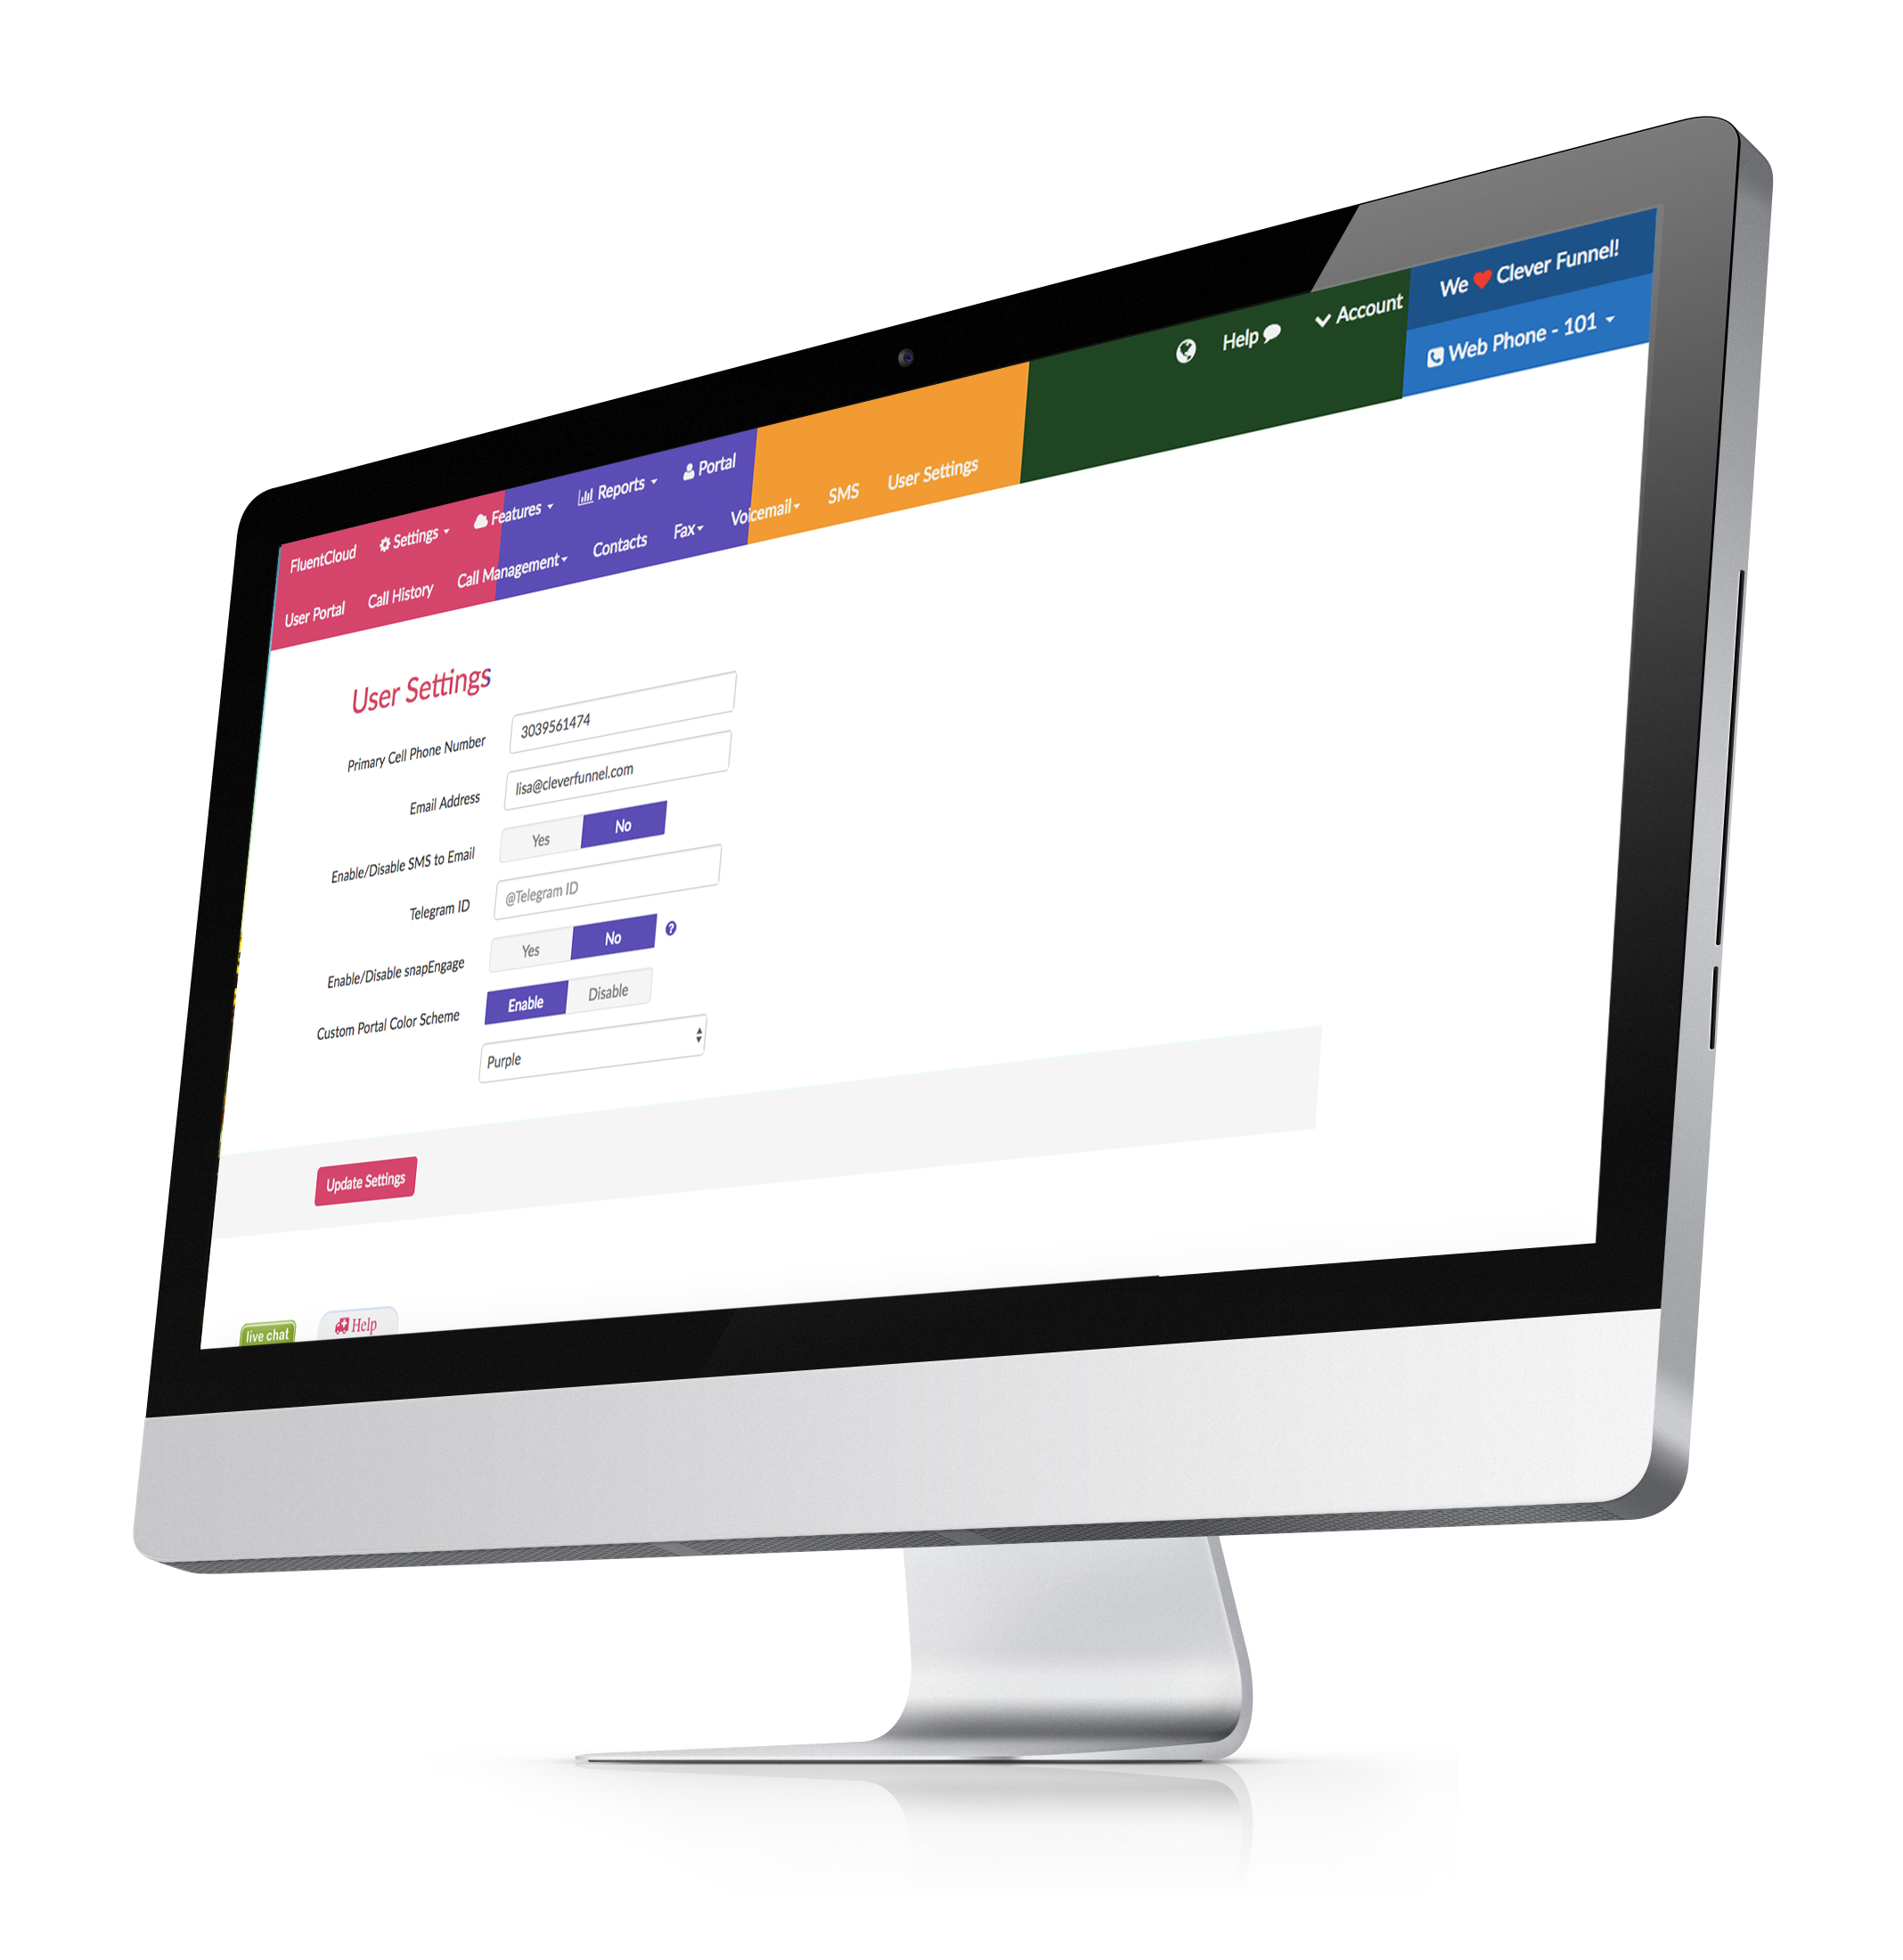 Cloud phone systems make it possible for administrators to make changes to the system without costly calls to a support team. My FluentCloud Web Portal gives variable levels of access to make changes on a system-wide level or at the user level.